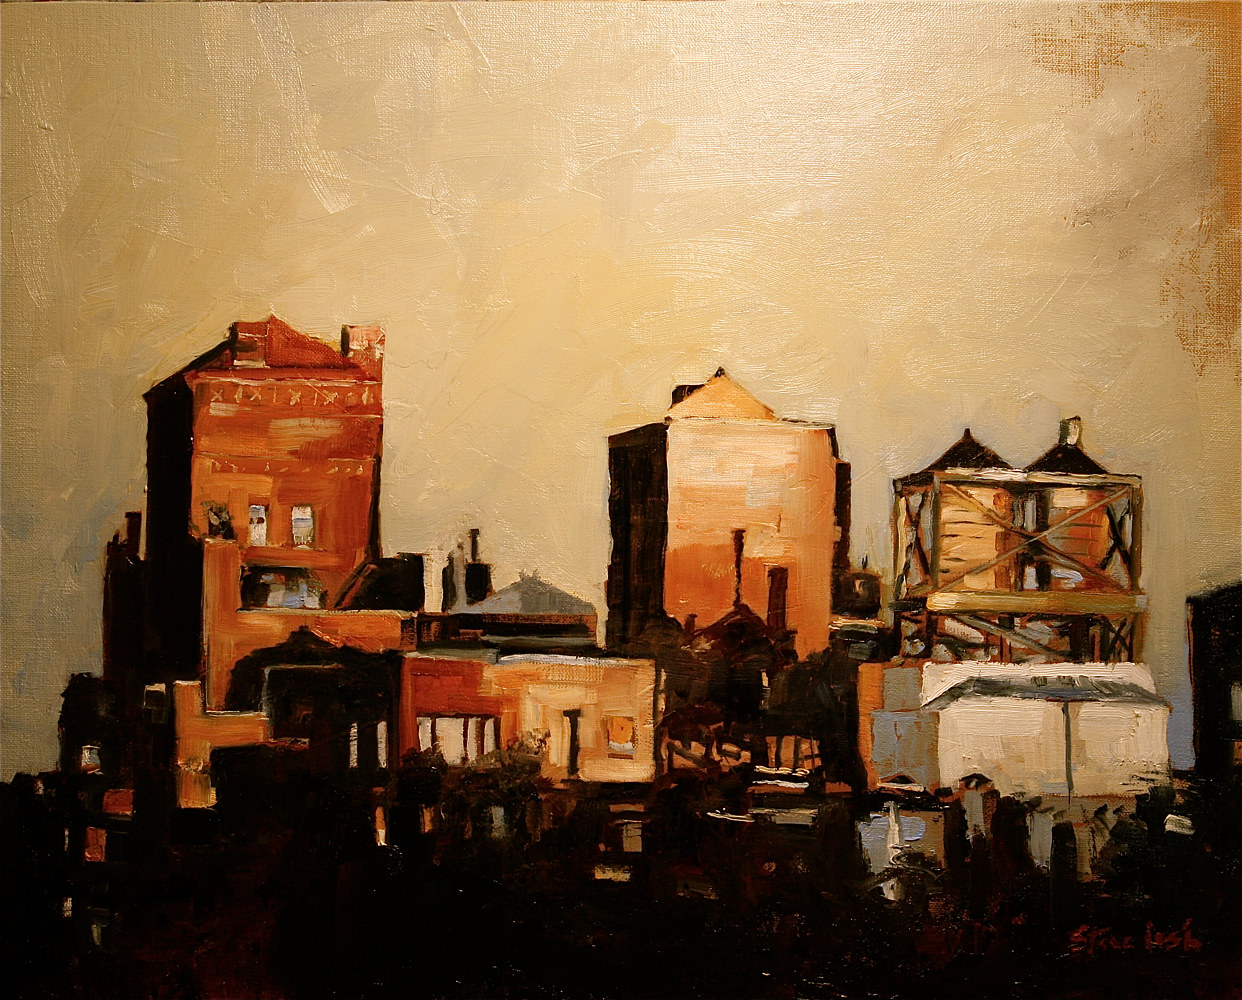 Oil painting Rooftops by Nella Lush